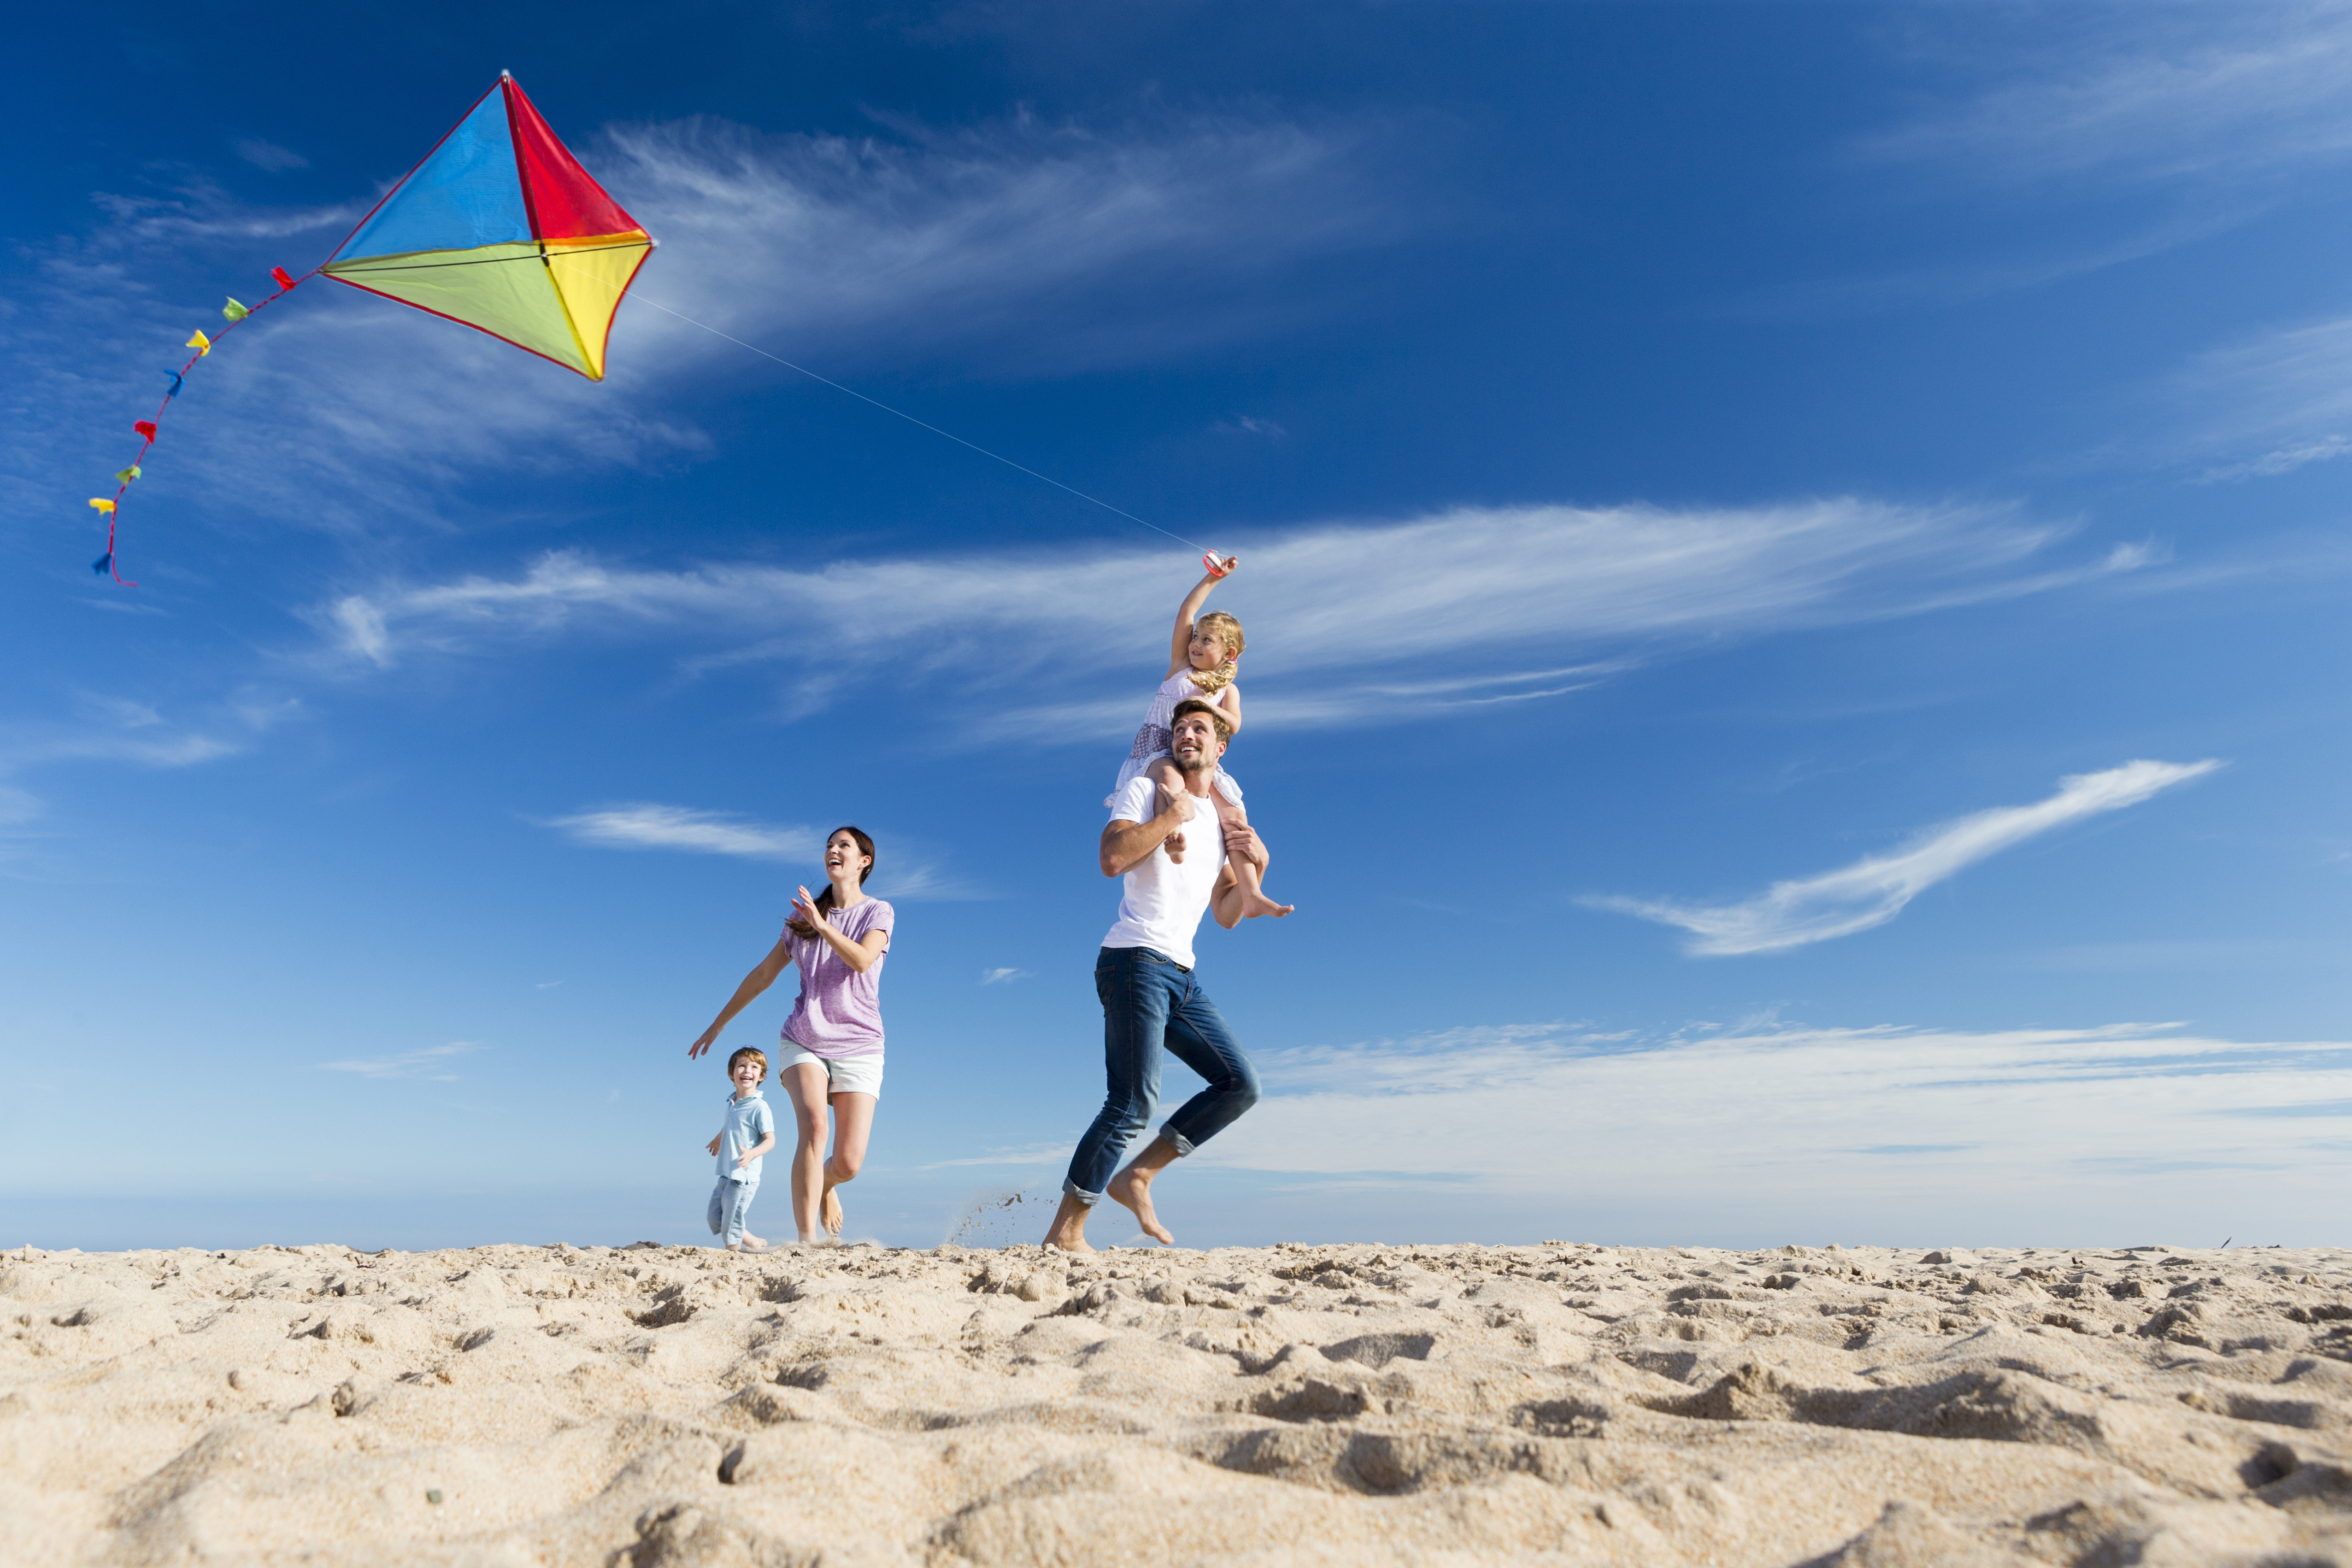 Family on the Beach Flting a Kite